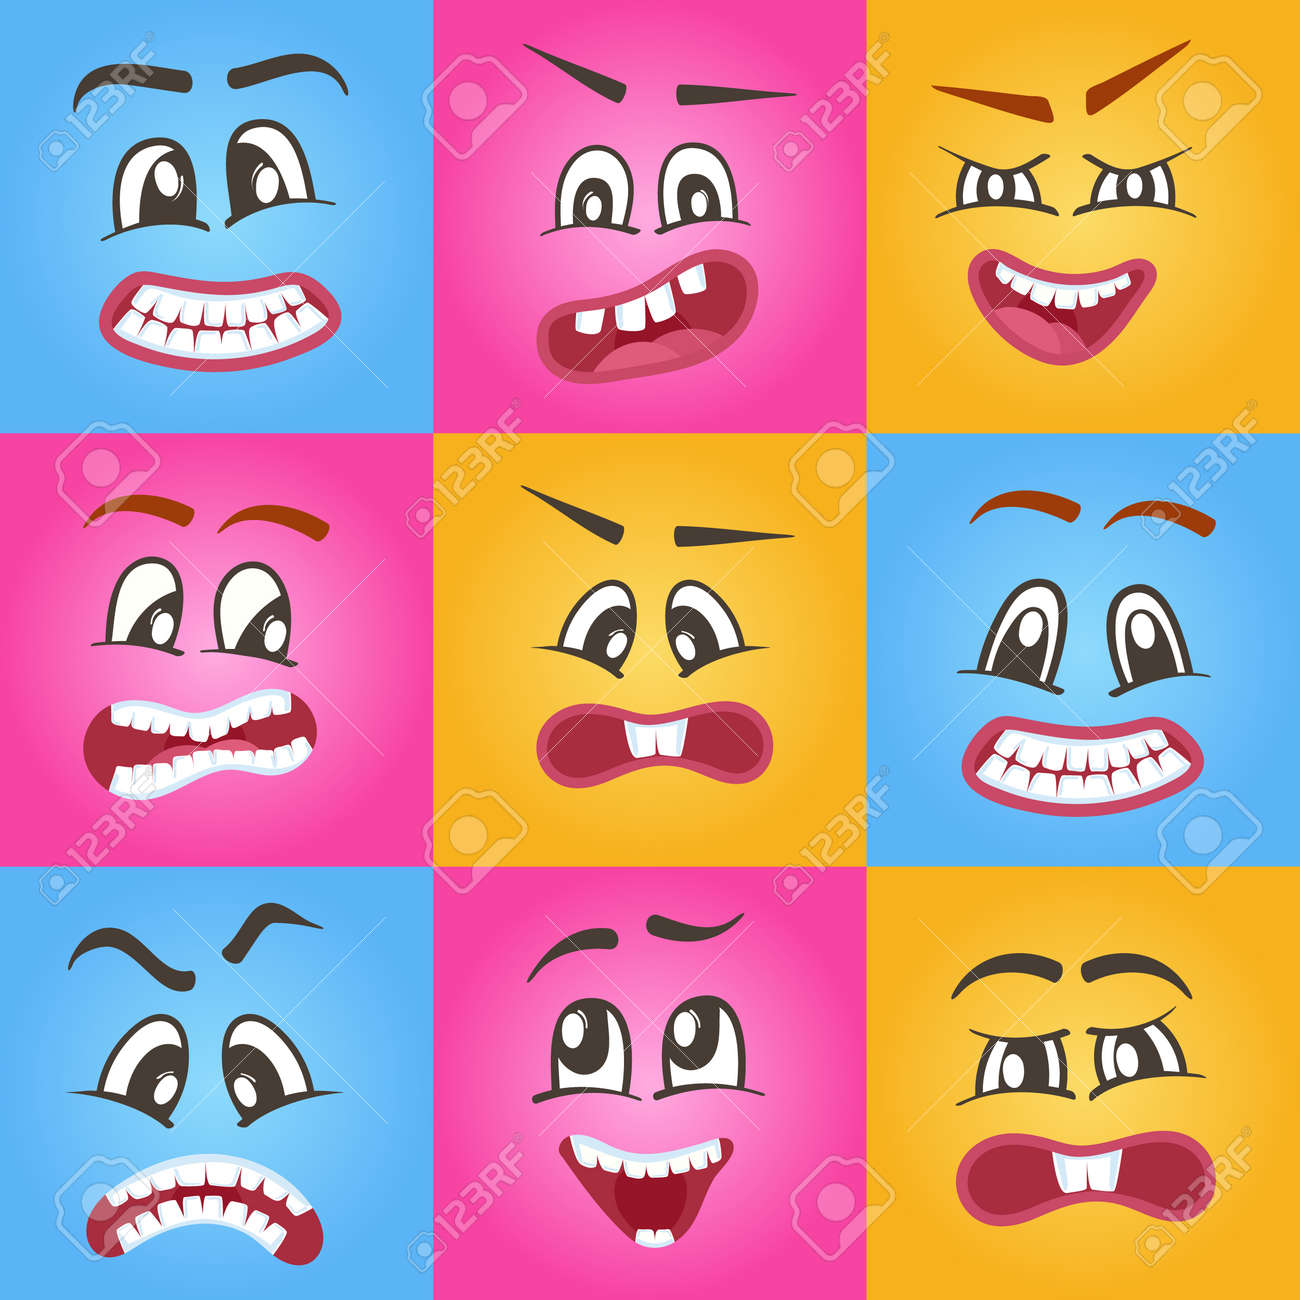 Funny Emoticons Or Vector Isolated Smileys Icons Set For Web